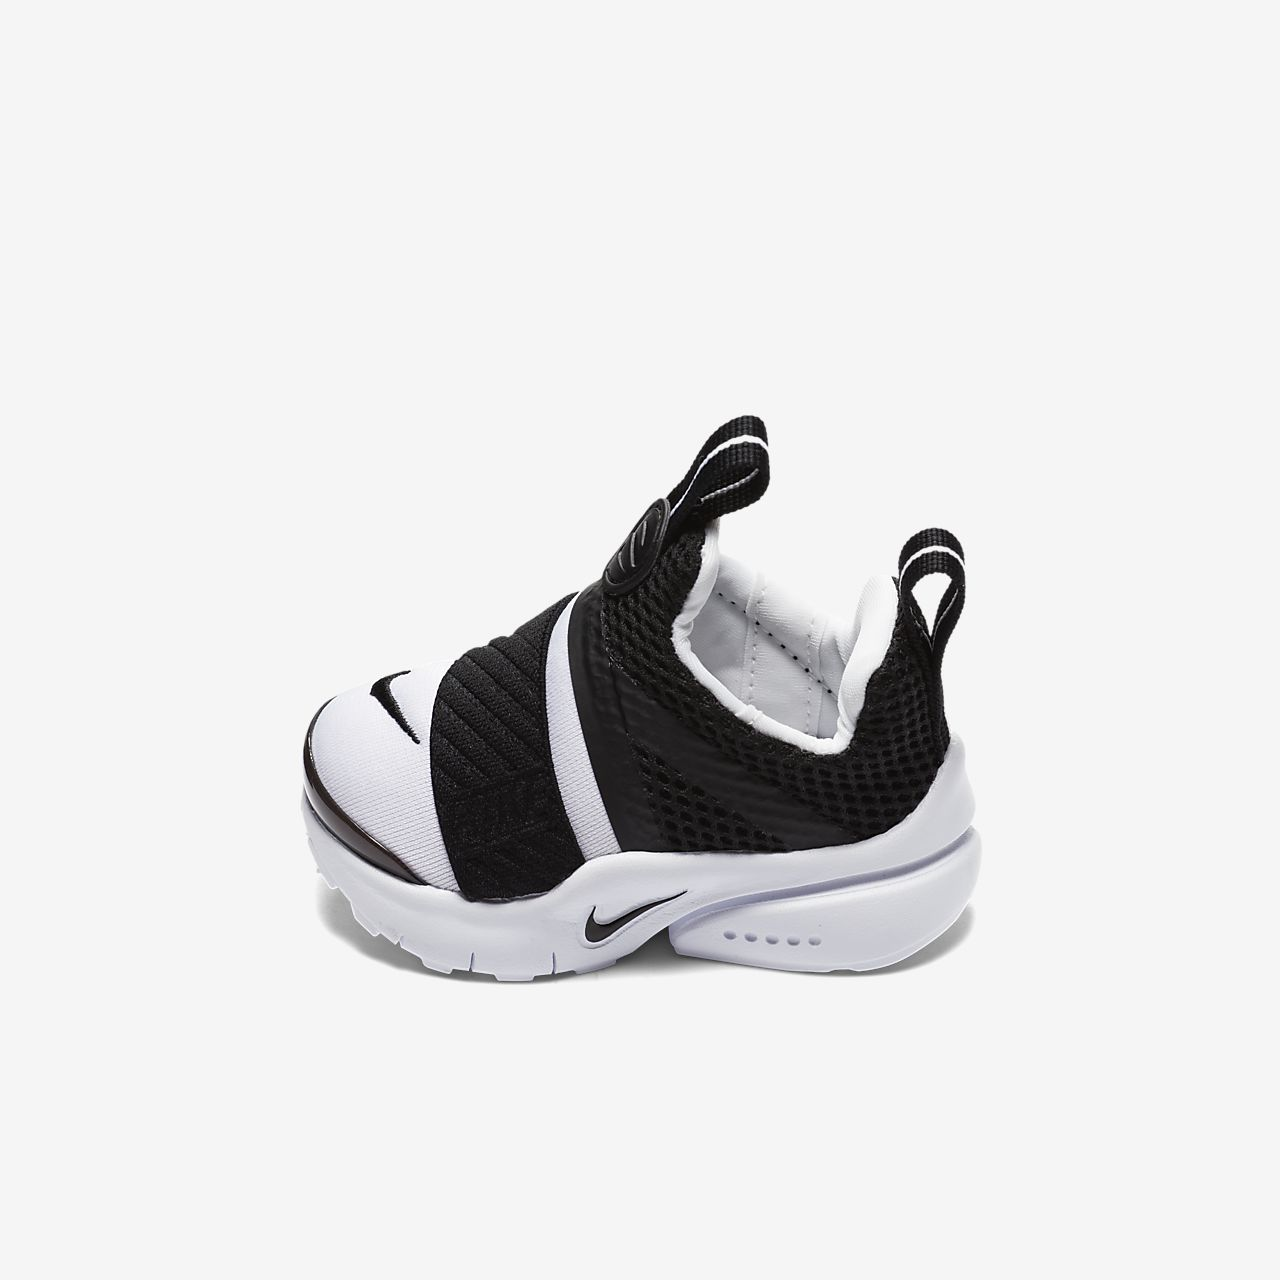 low priced ffcd6 51c67 ... Nike Presto Extreme Baby  amp  Toddler Shoe